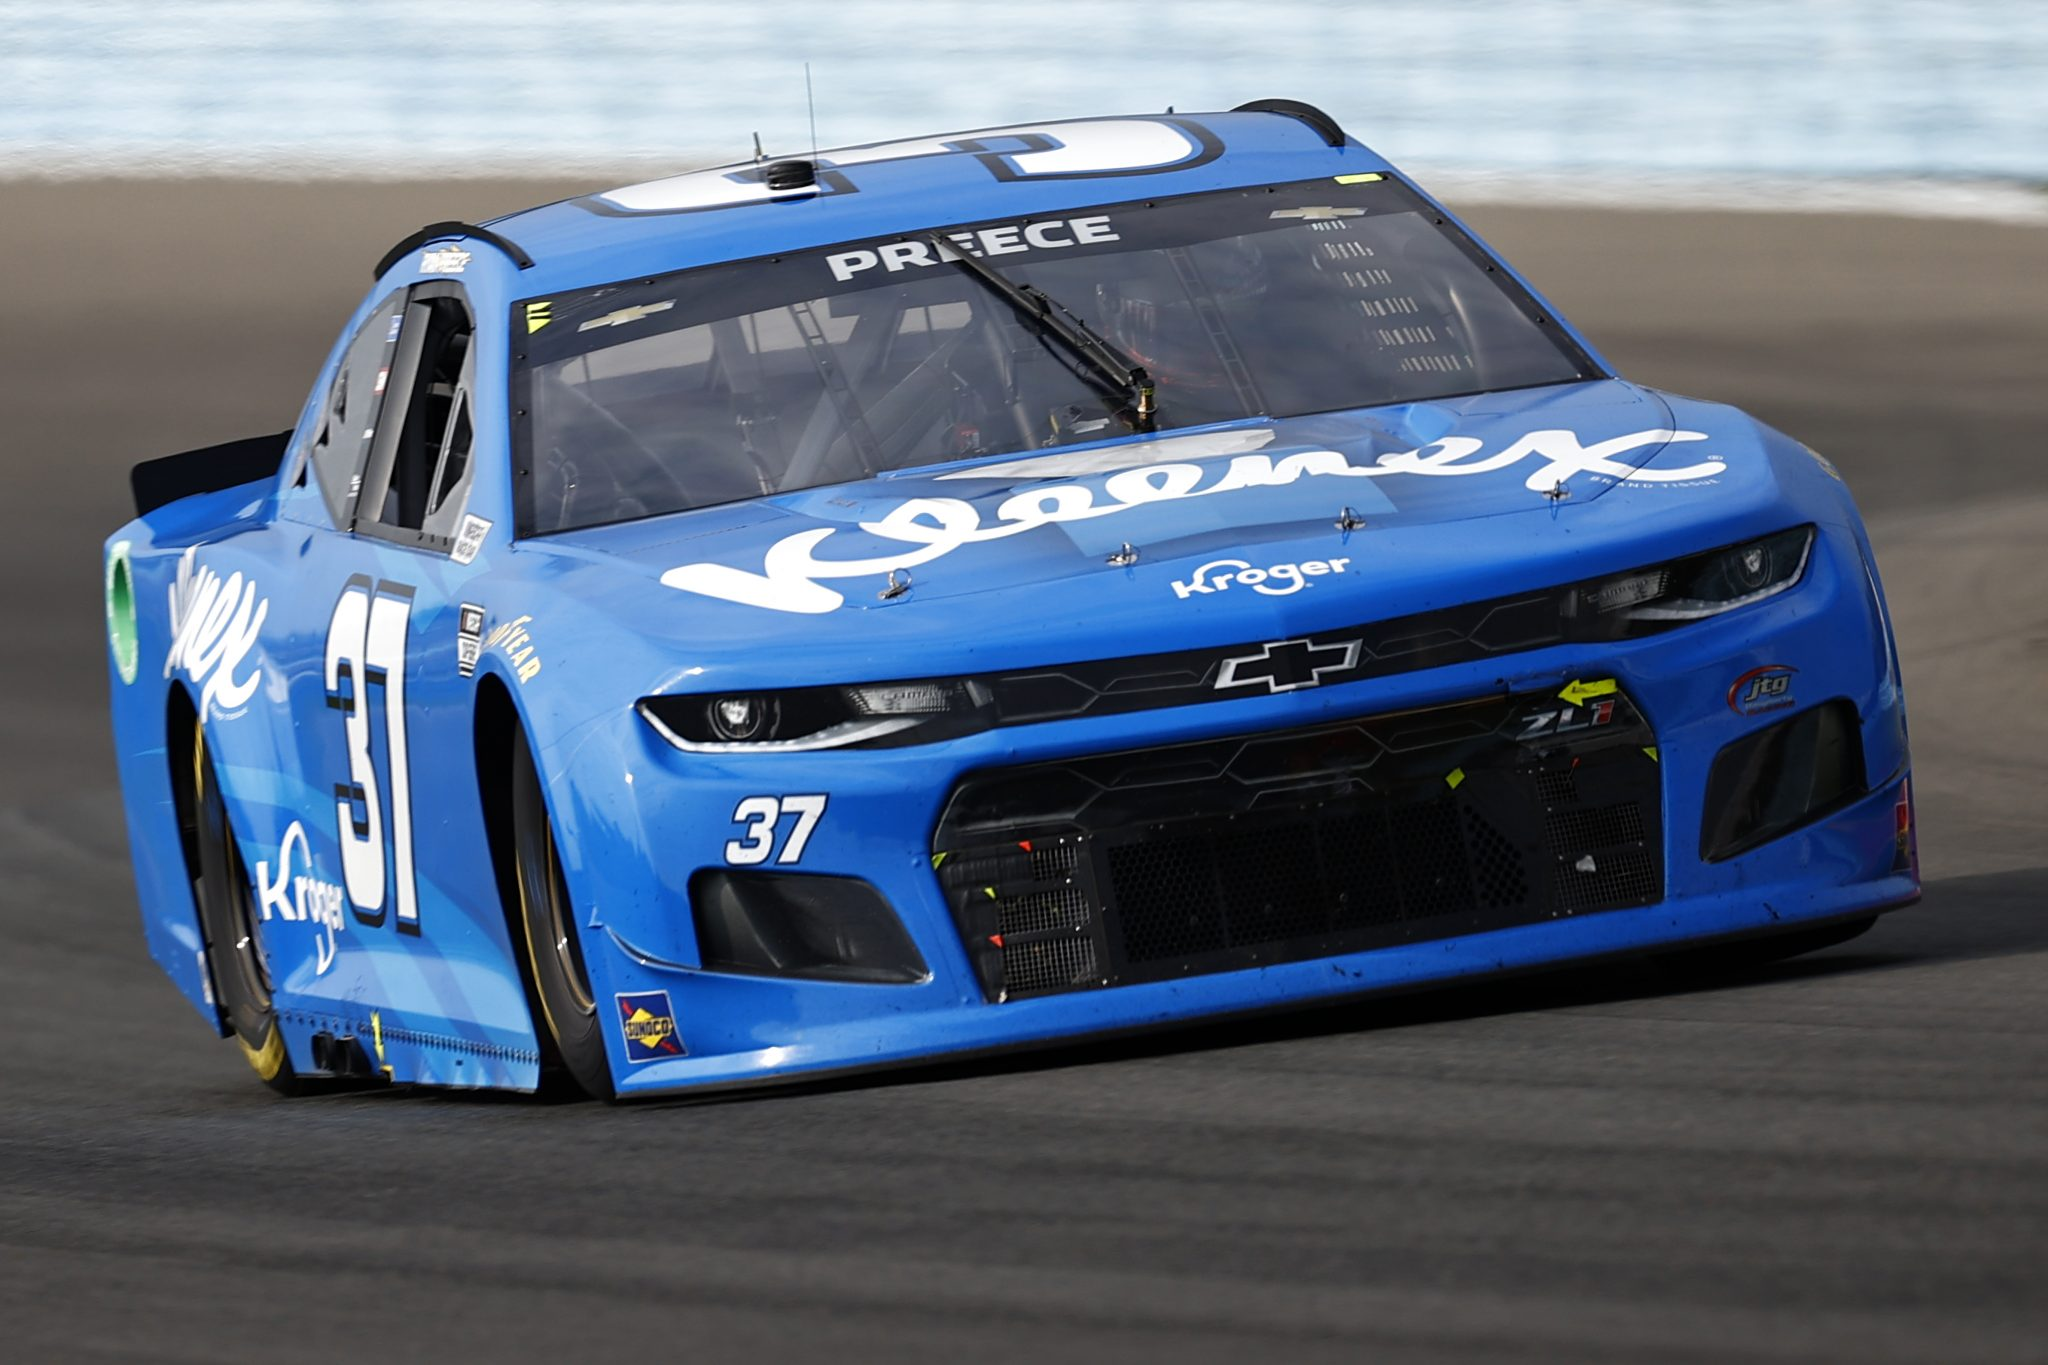 WATKINS GLEN, NEW YORK - AUGUST 08: Ryan Preece, driver of the #37 Kleenex Chevrolet, drives during the NASCAR Cup Series Go Bowling at The Glen at Watkins Glen International on August 08, 2021 in Watkins Glen, New York. (Photo by Jared C. Tilton/Getty Images) | Getty Images